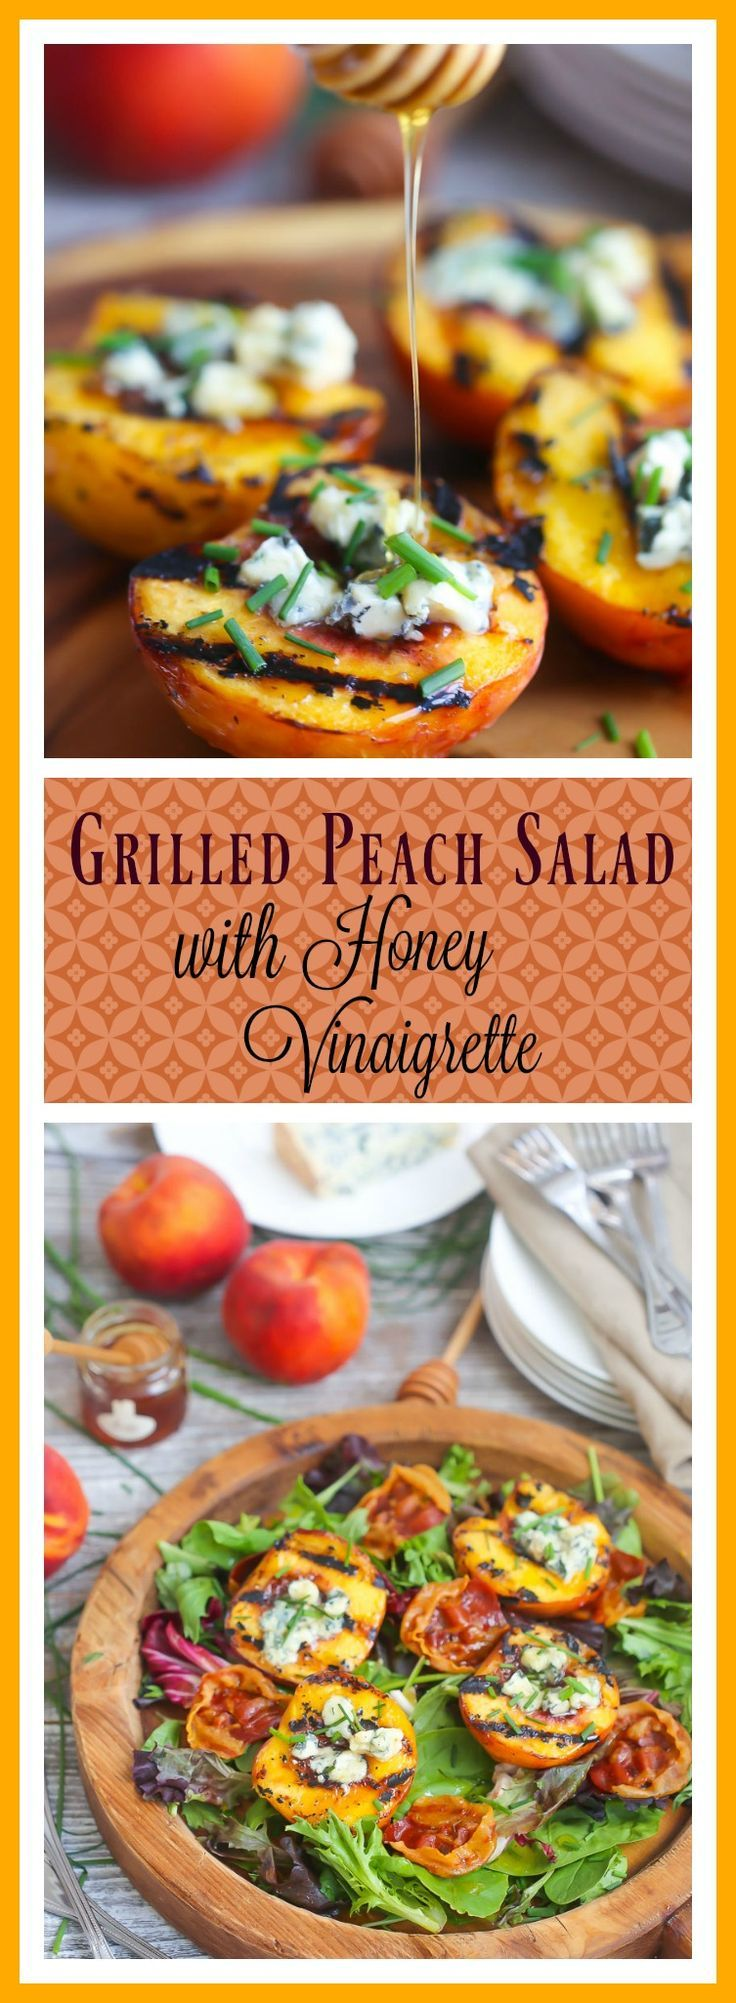 This sweet and salty salad celebrates the last days of summer with grilled peaches and creamy blue cheese drizzled with tangy honey vinaigrette.